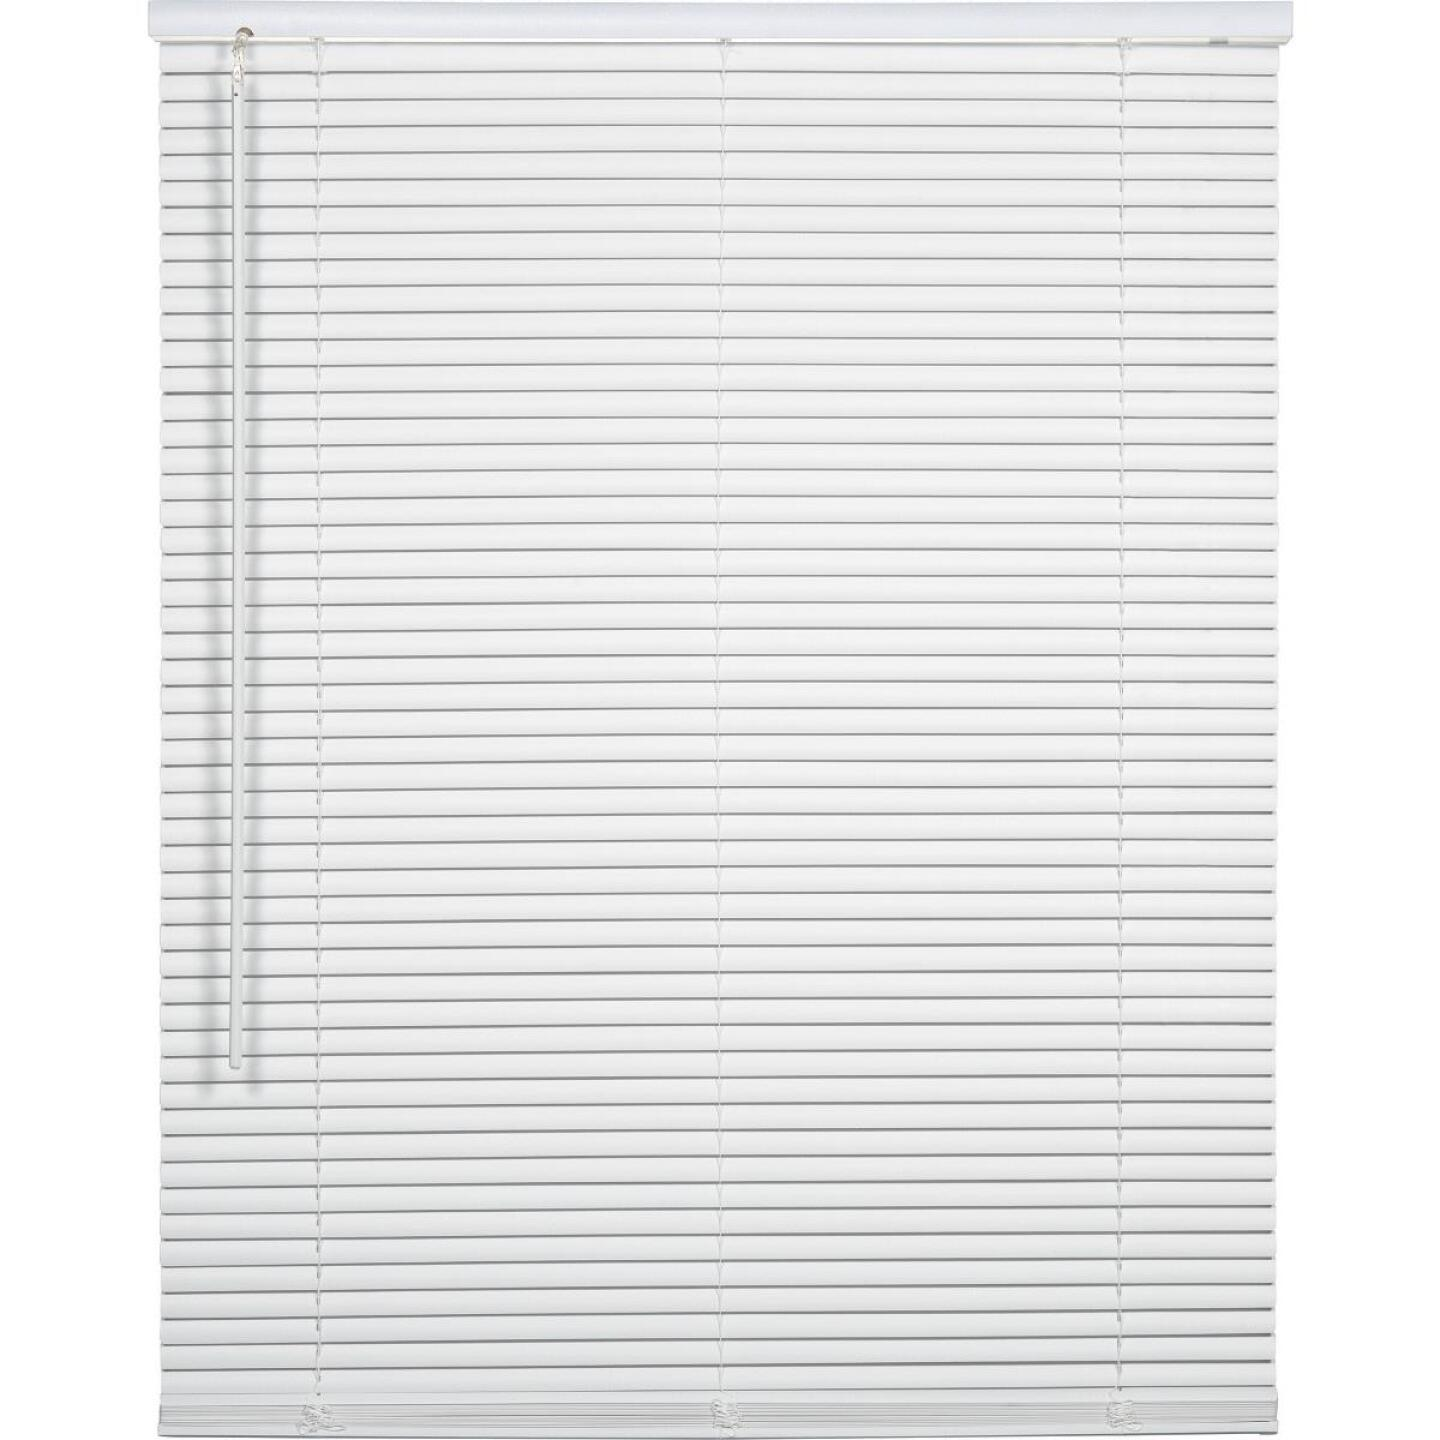 Home Impressions 32 In. x 72 In. x 1 In. White Vinyl Light Filtering Cordless Mini Blind Image 1